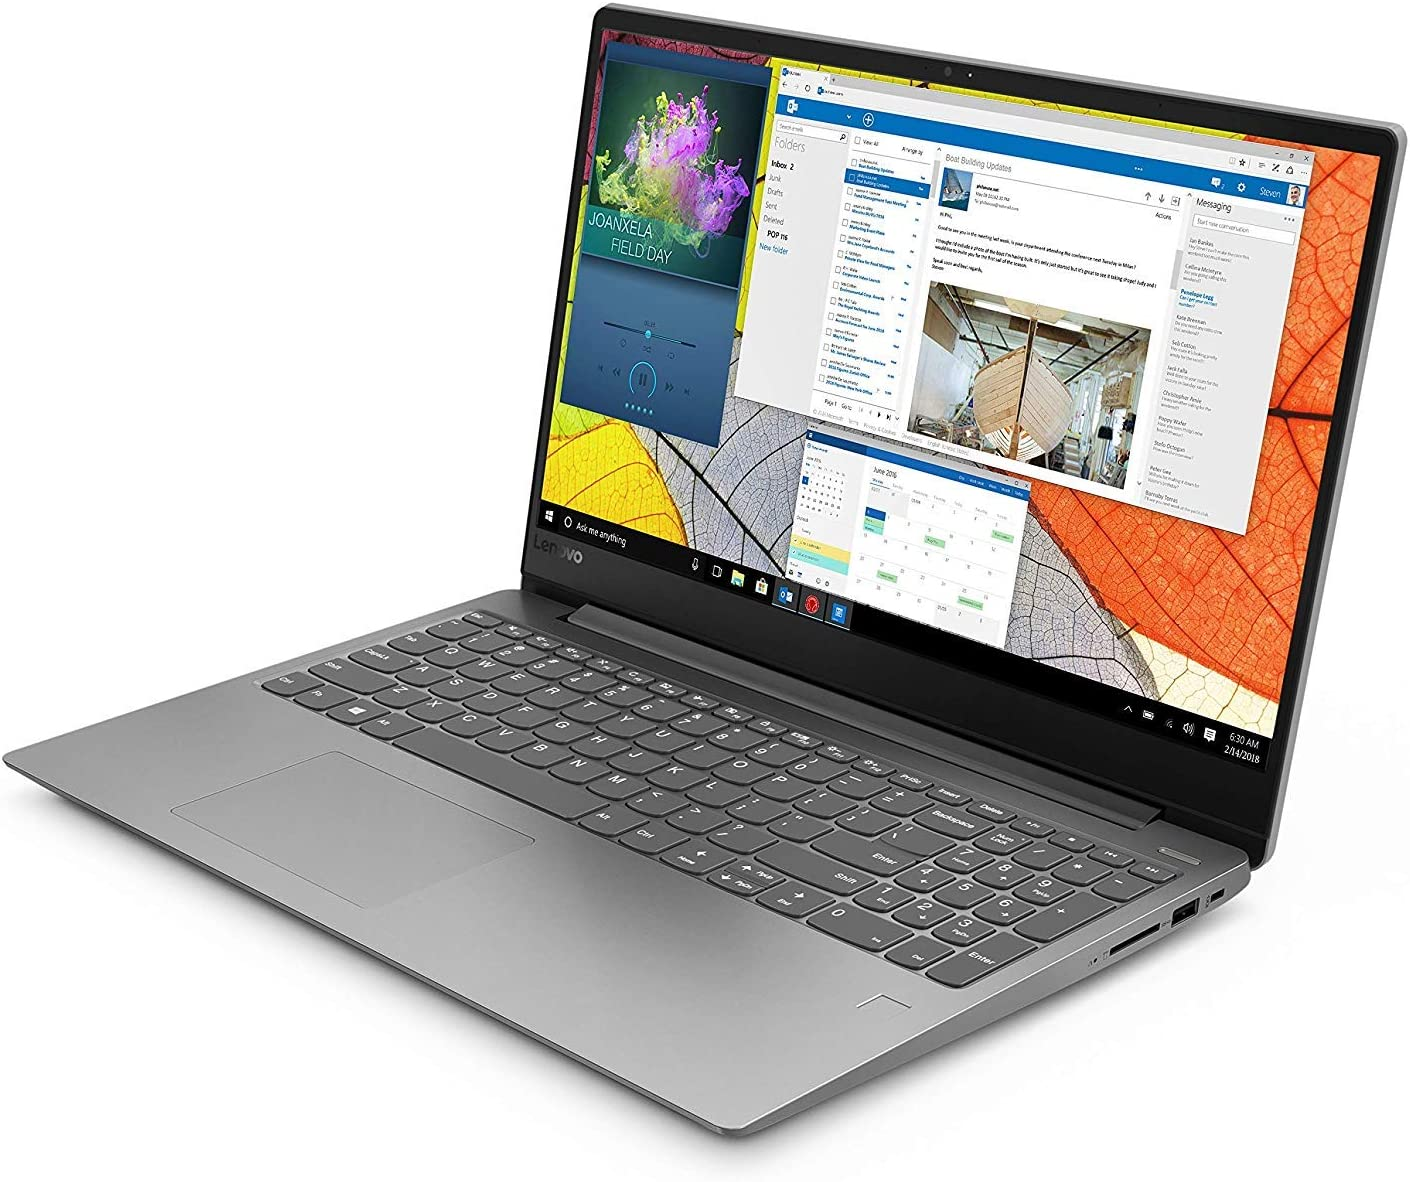 "Lenovo Ideapad 330s 15.6"" Laptop, AMD Ryzen 5 2500U Quad-Core Processor, 8GB Memory, 256GB Storage, Windows 10, Platinum Grey- 81FB00HKUS"